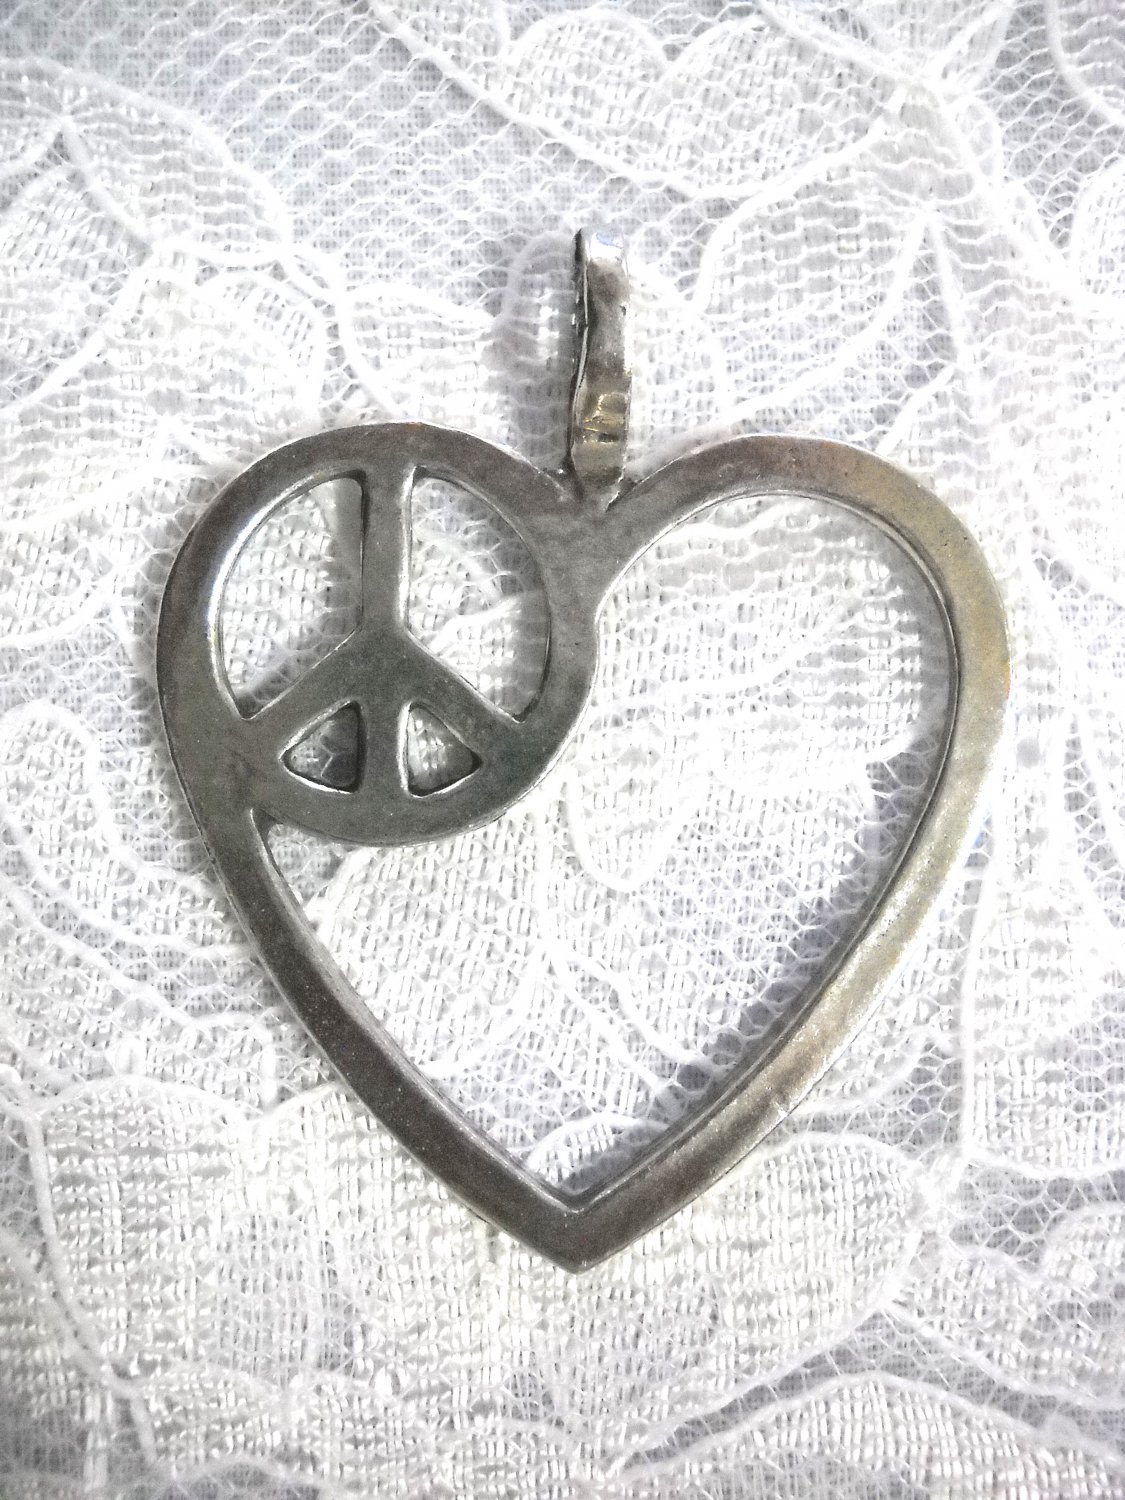 NEW DESIGN USA CAST PEWTER GIANT HEART w MERGED PEACE SIGN PENDANT ADJ NECKLACE